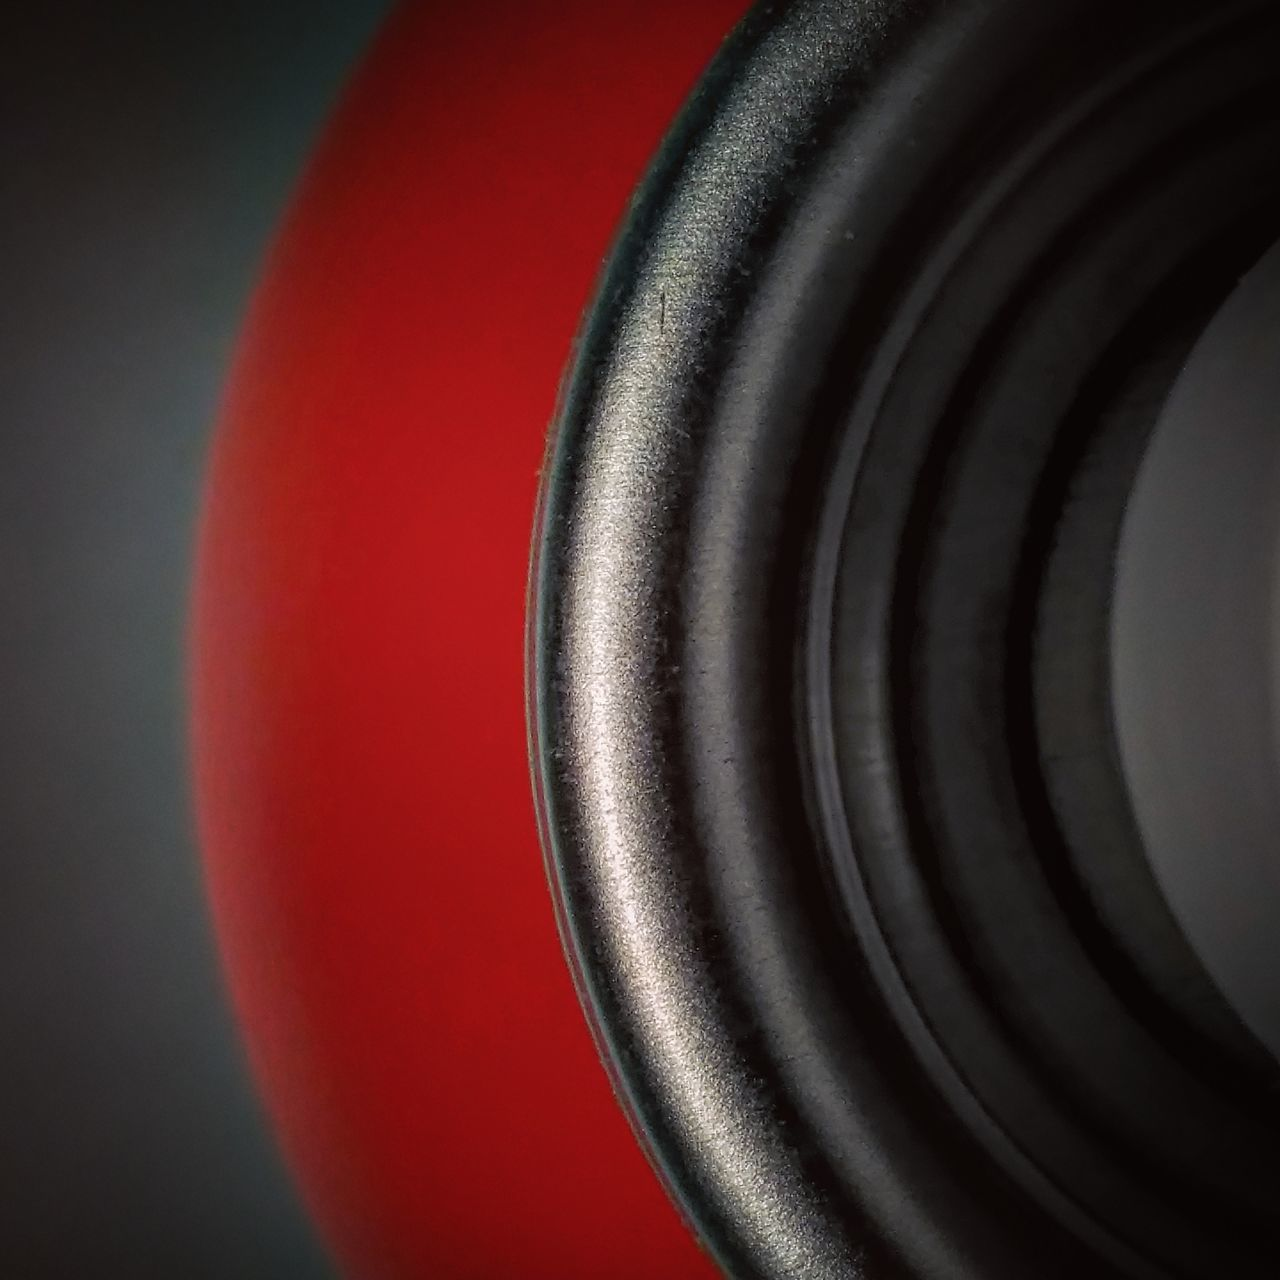 circle, red, close-up, technology, indoors, no people, textured, studio shot, day